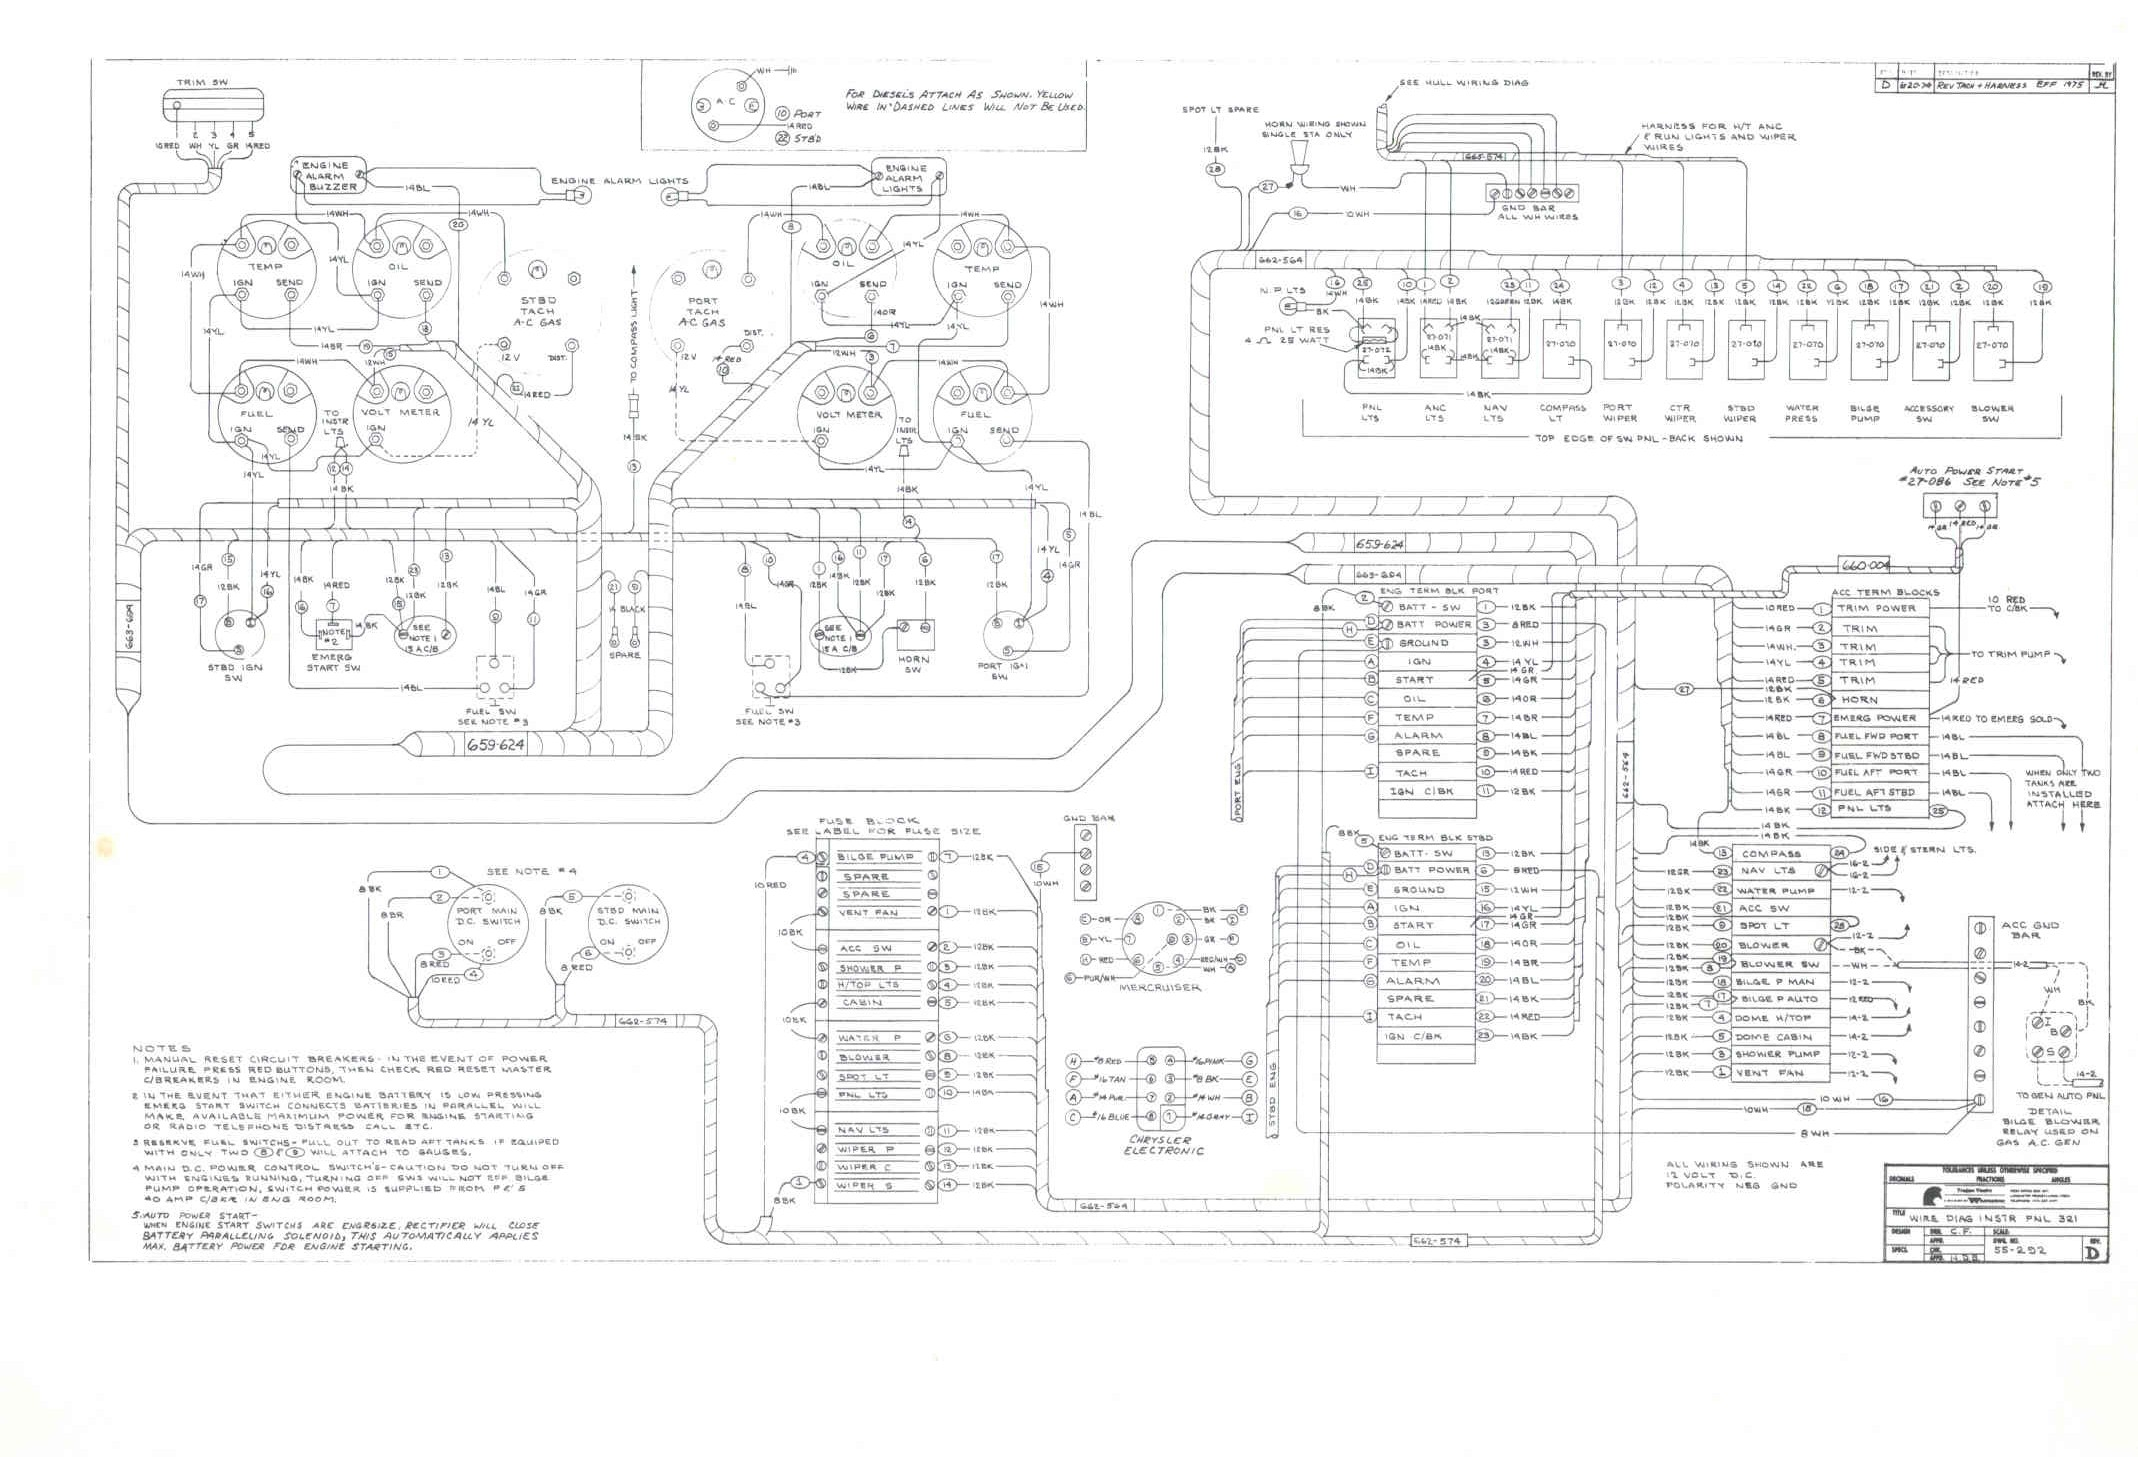 Original F-32 Schematics And Wiring Diagrams